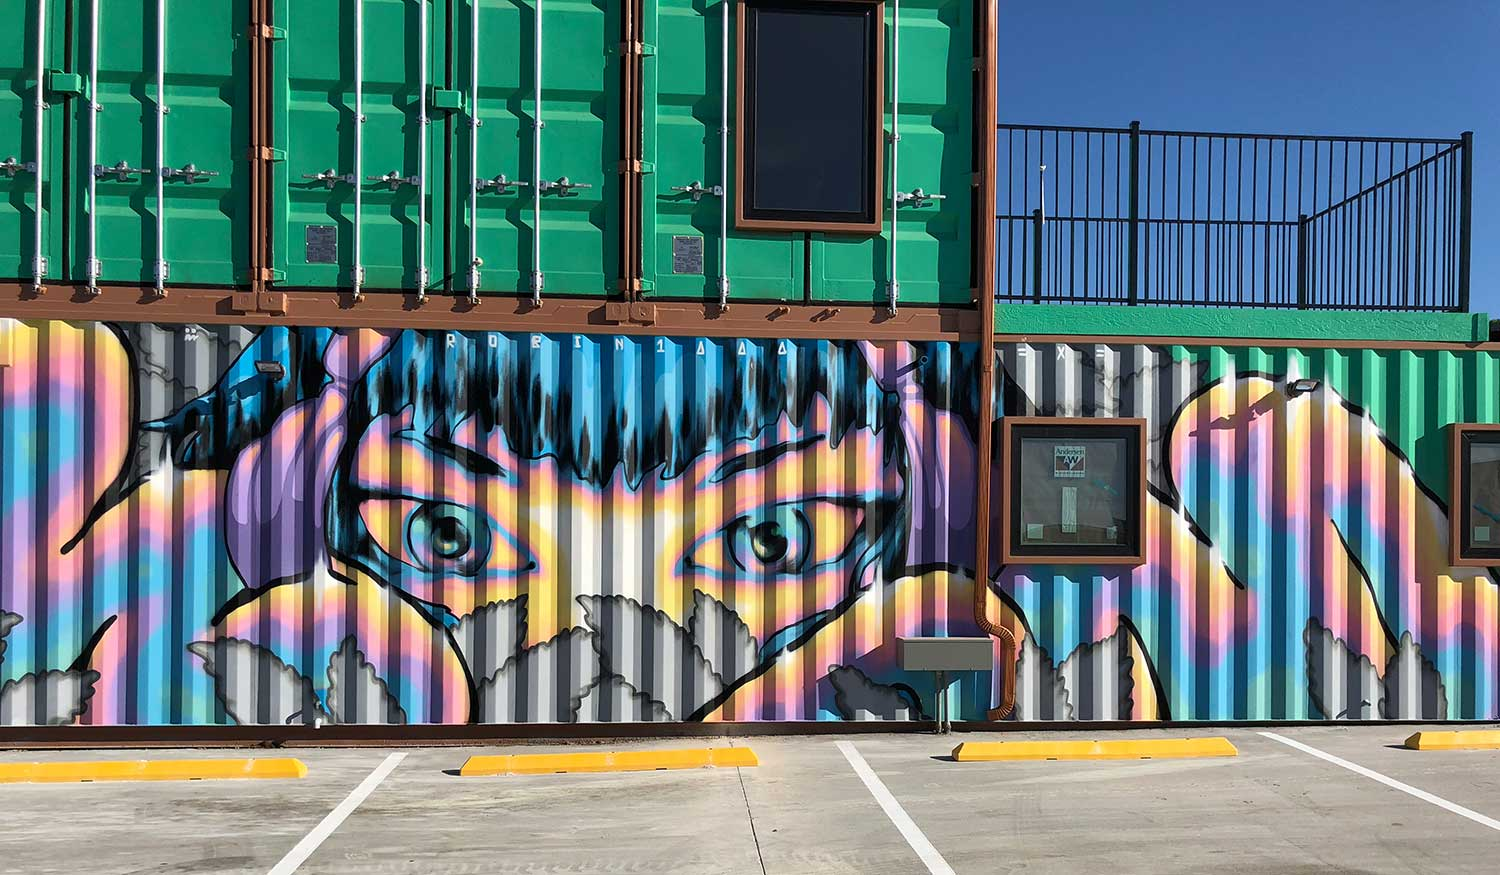 grai-painted-shipping-containers-1500 Painted Mobile Home Interior on bungalow style homes, painted concrete floors in homes, painted windows, painted swimming pools, painted wall painting designs, painted cars, painted brick homes, painted wood walls, painted campers, painted detroit homes, painted mountains, painted furniture, painted log homes, vapor barrier in homes, aluminum siding for homes, painted war horse, painted ranch style homes,